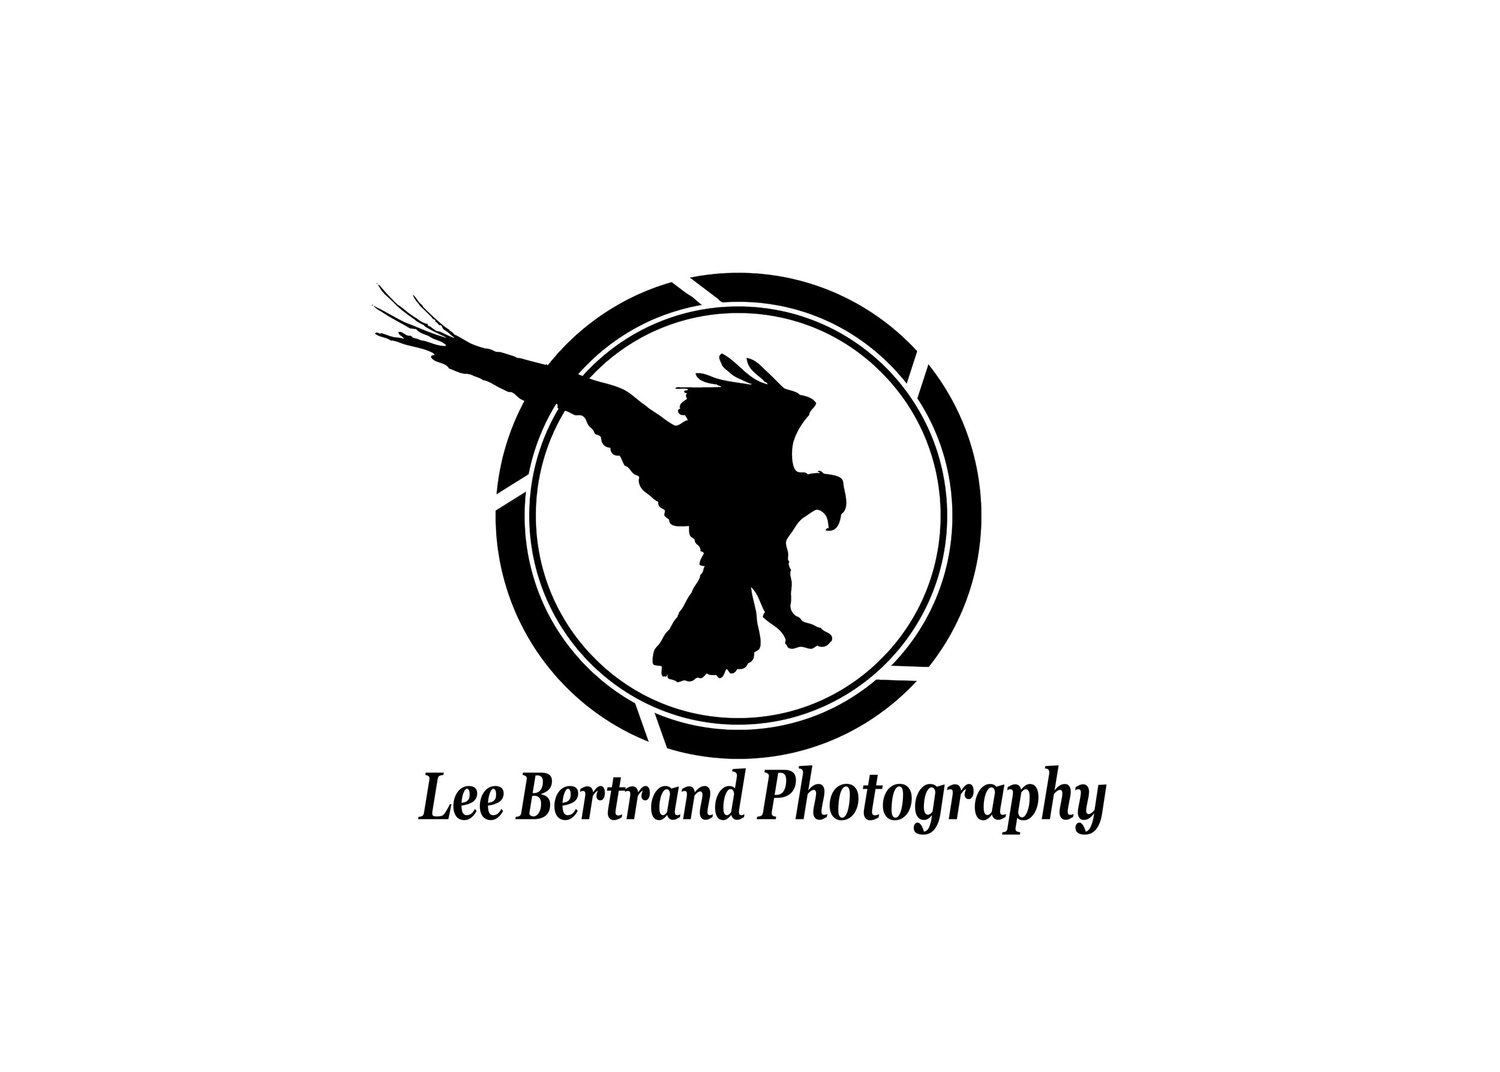 Lee Bertrand Photography and fine art